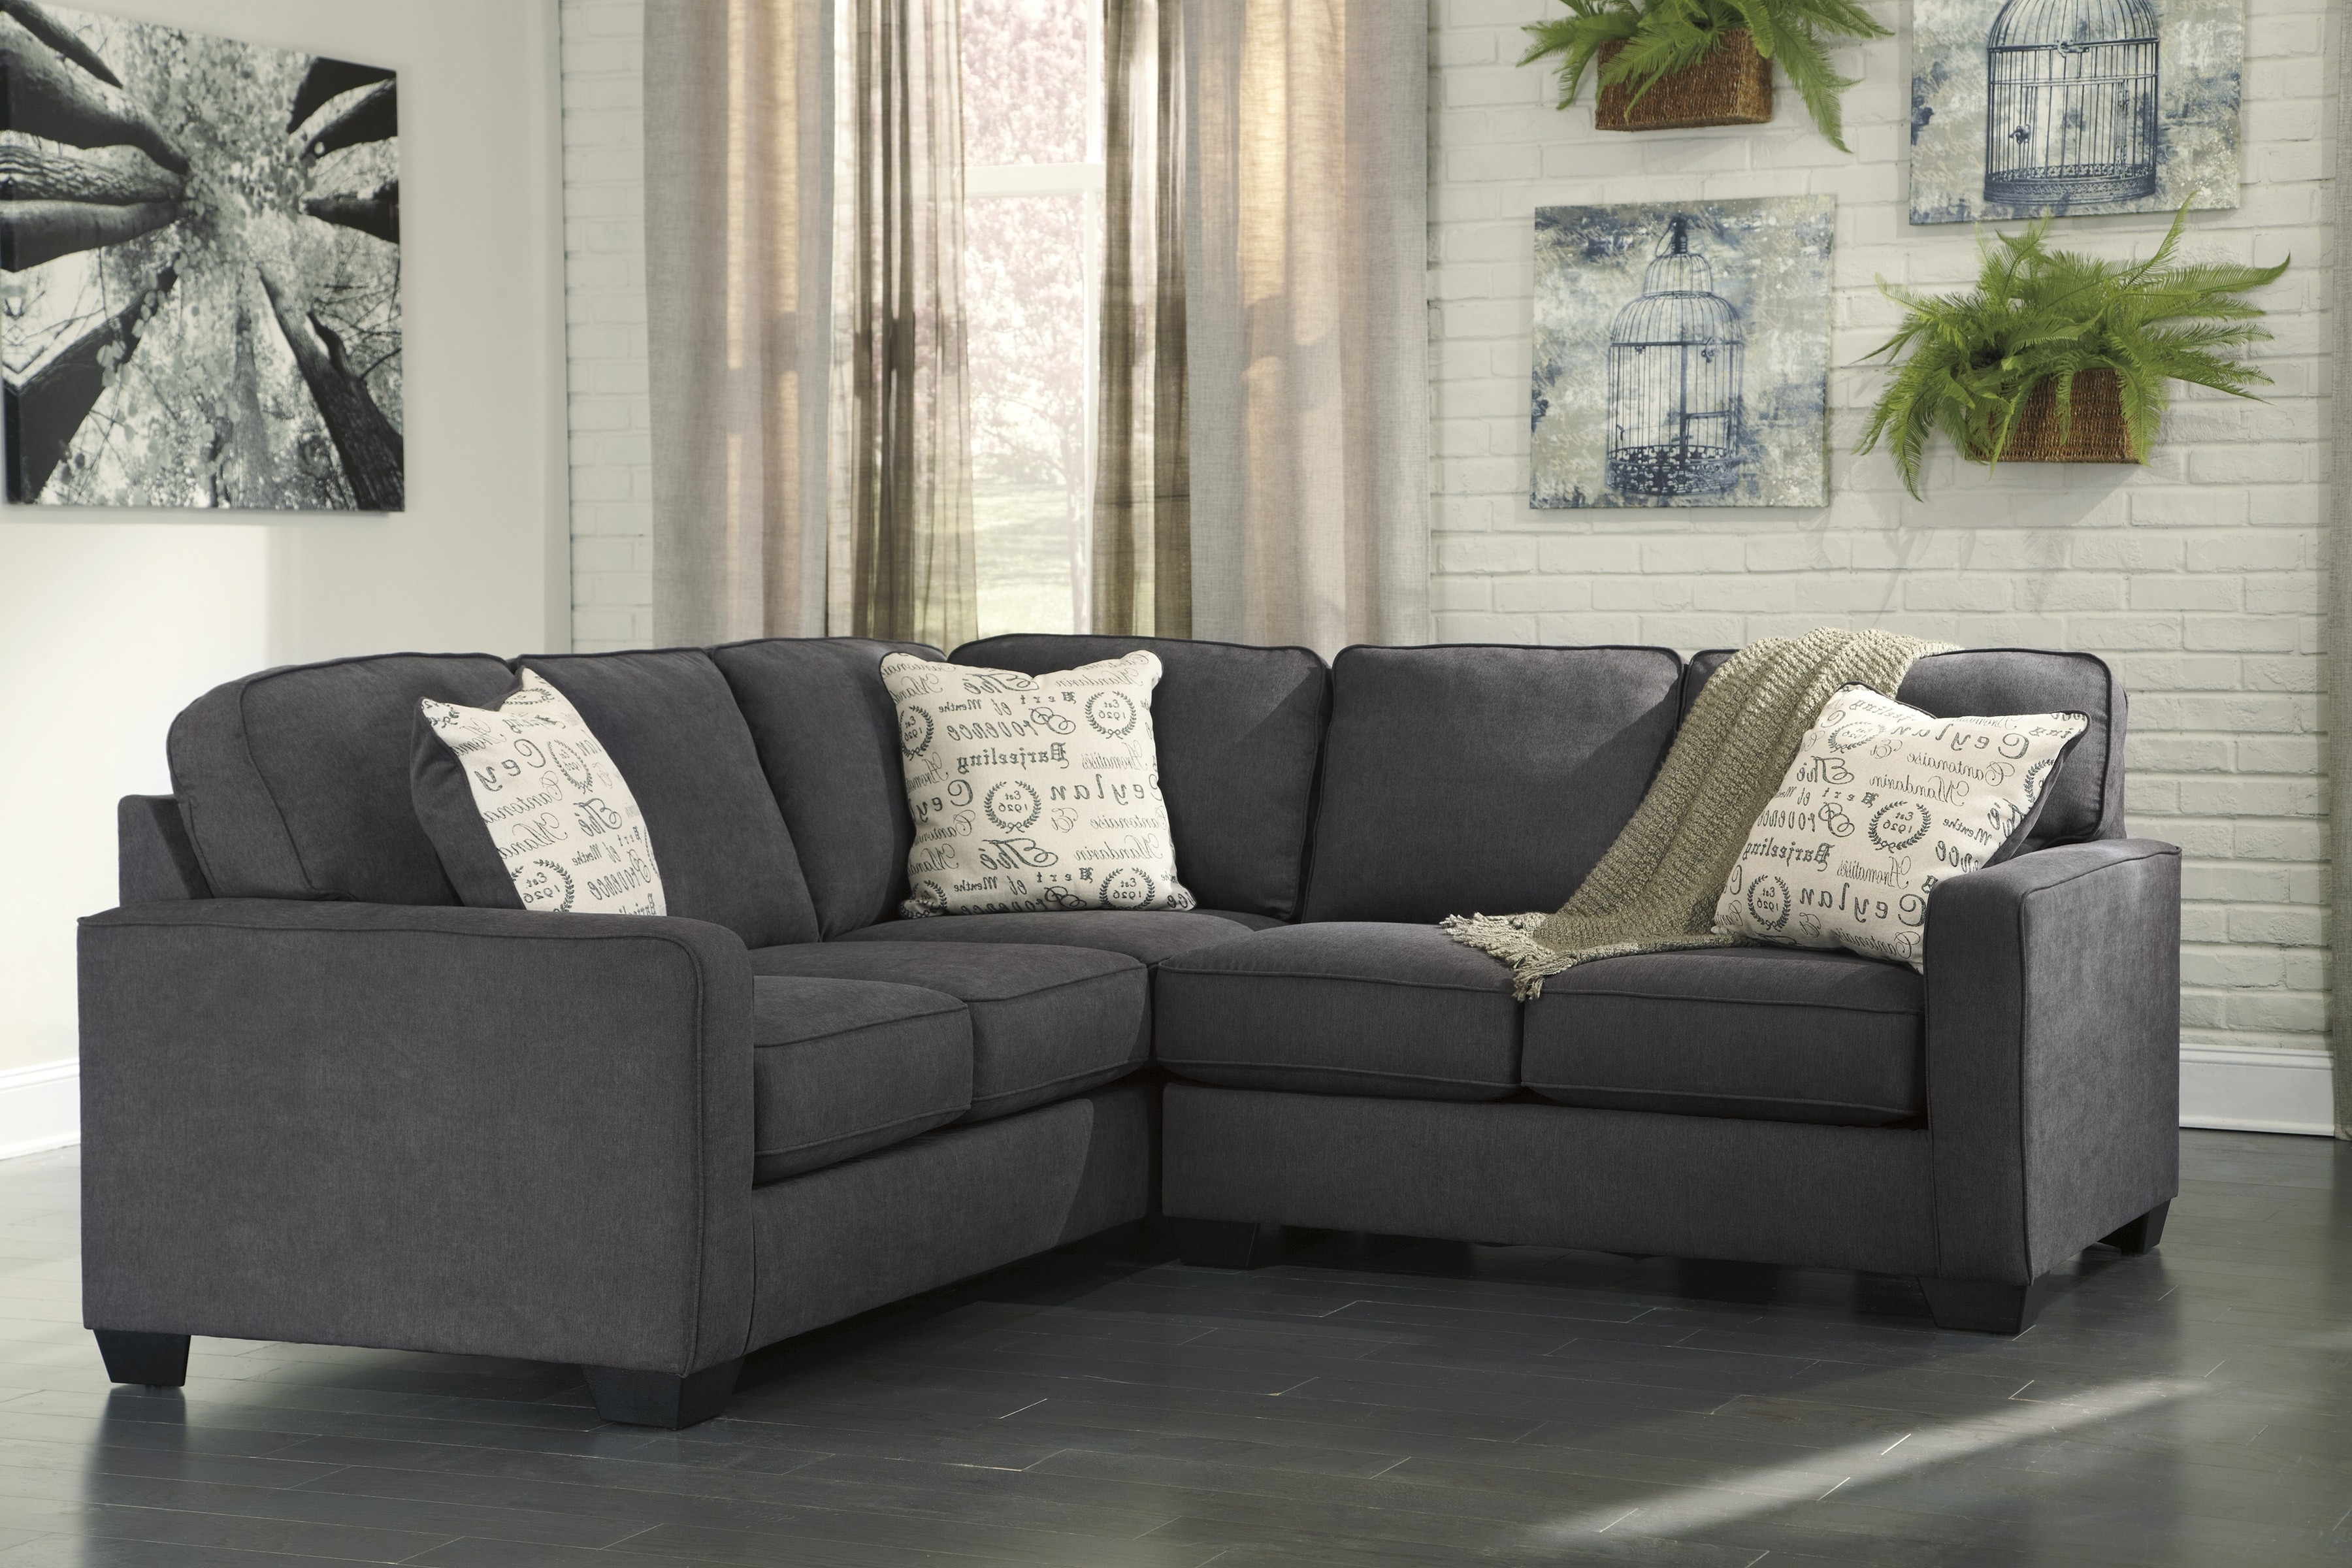 Alenya Charcoal Piece Sectional Sofa For Furnitureusa Raf Love Tures In Aspen 2 Piece Sleeper Sectionals With Laf Chaise (Image 2 of 25)